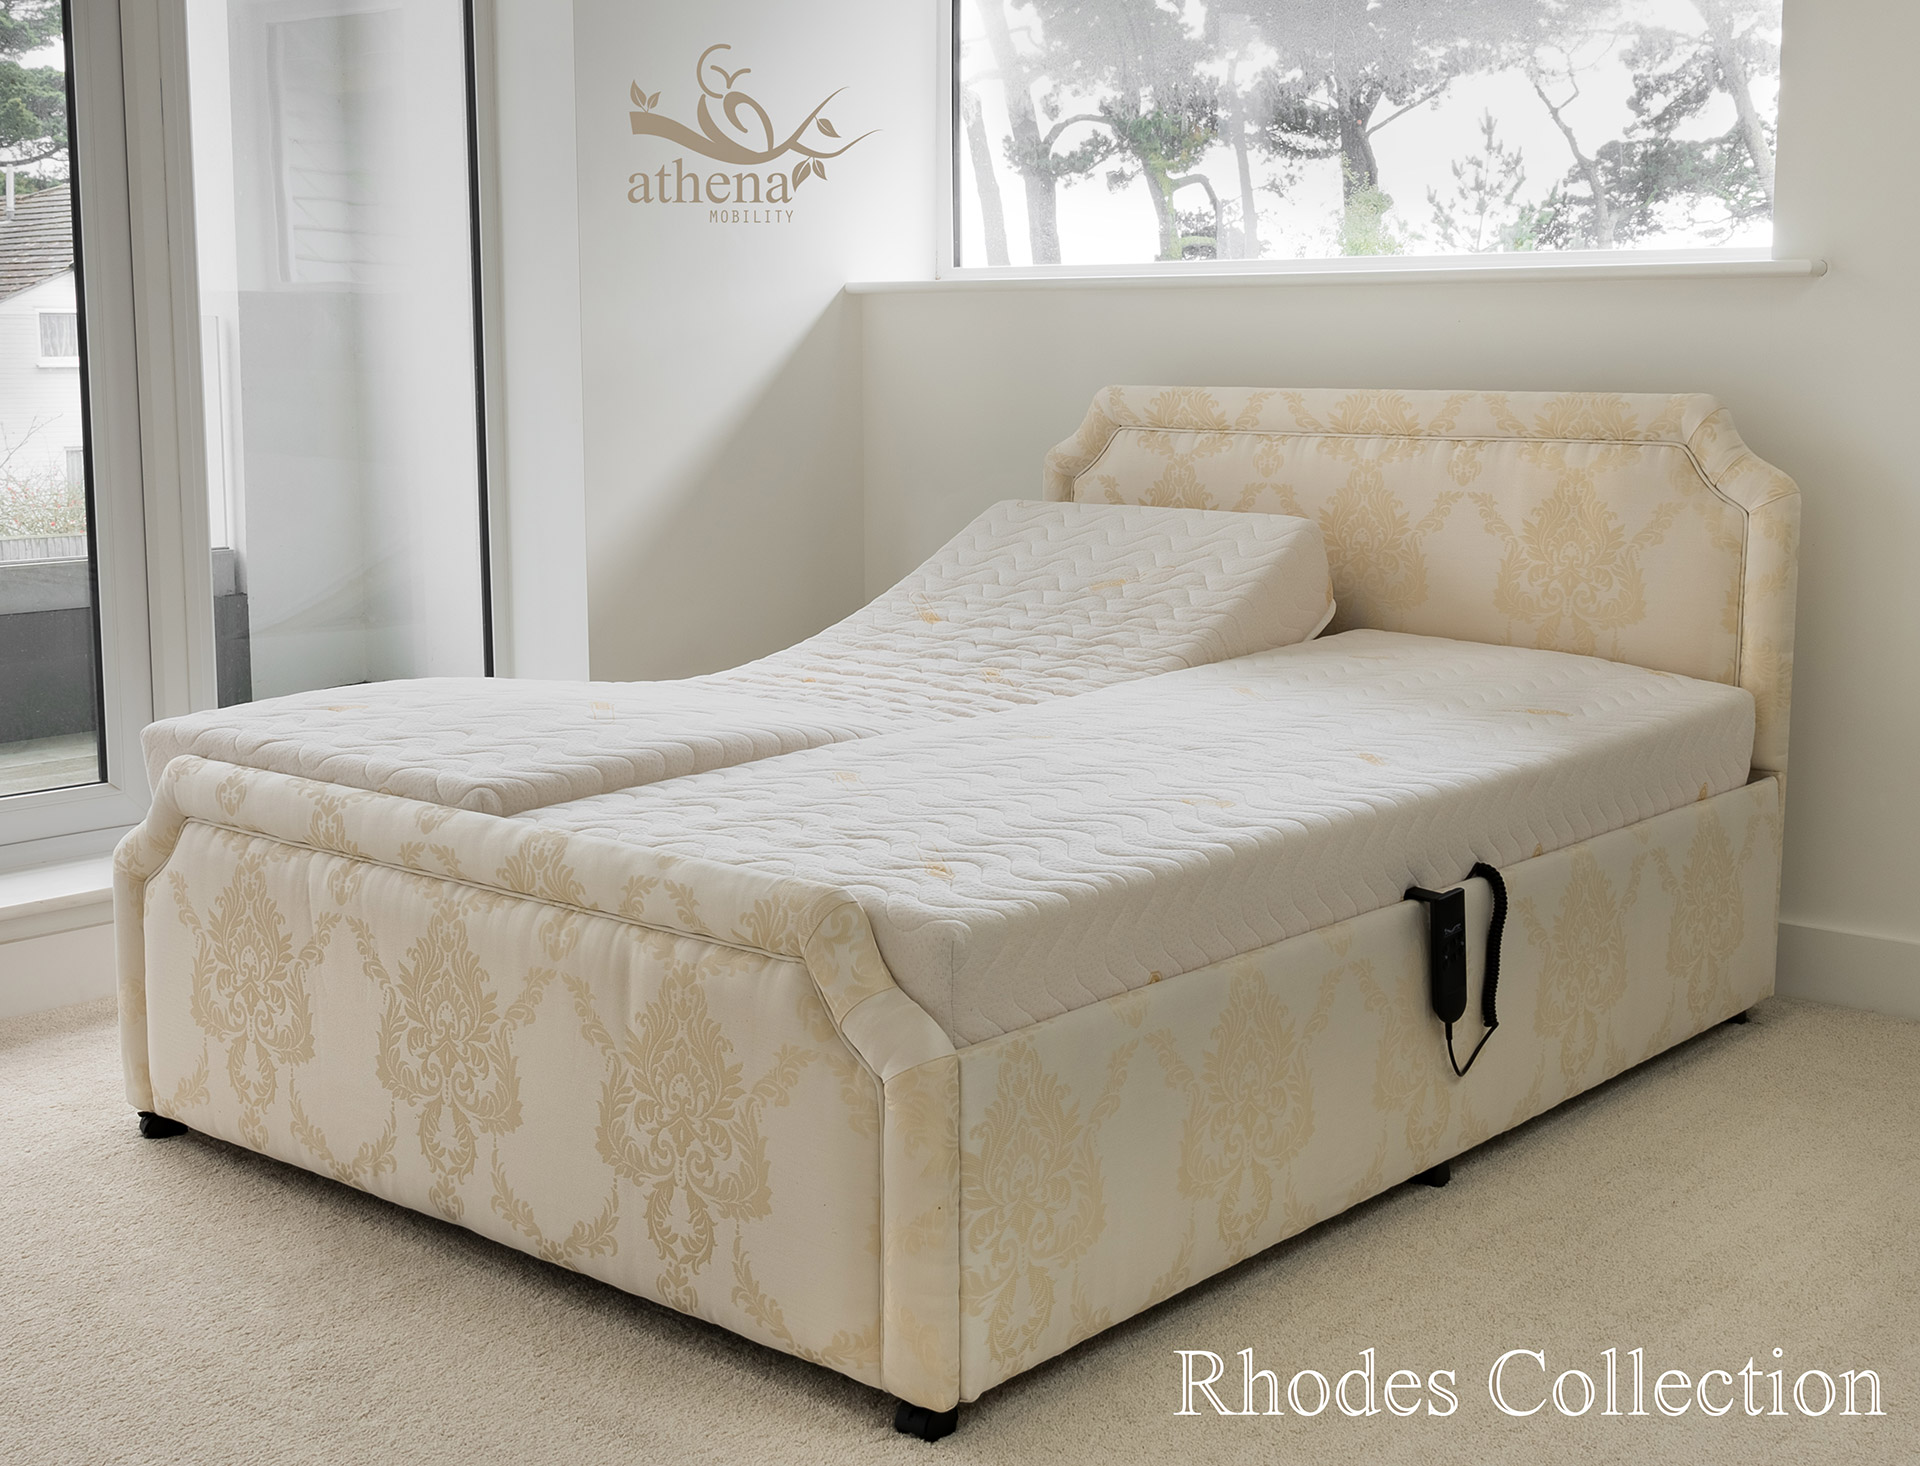 Athena Mobility | Rhodes Bed Collection